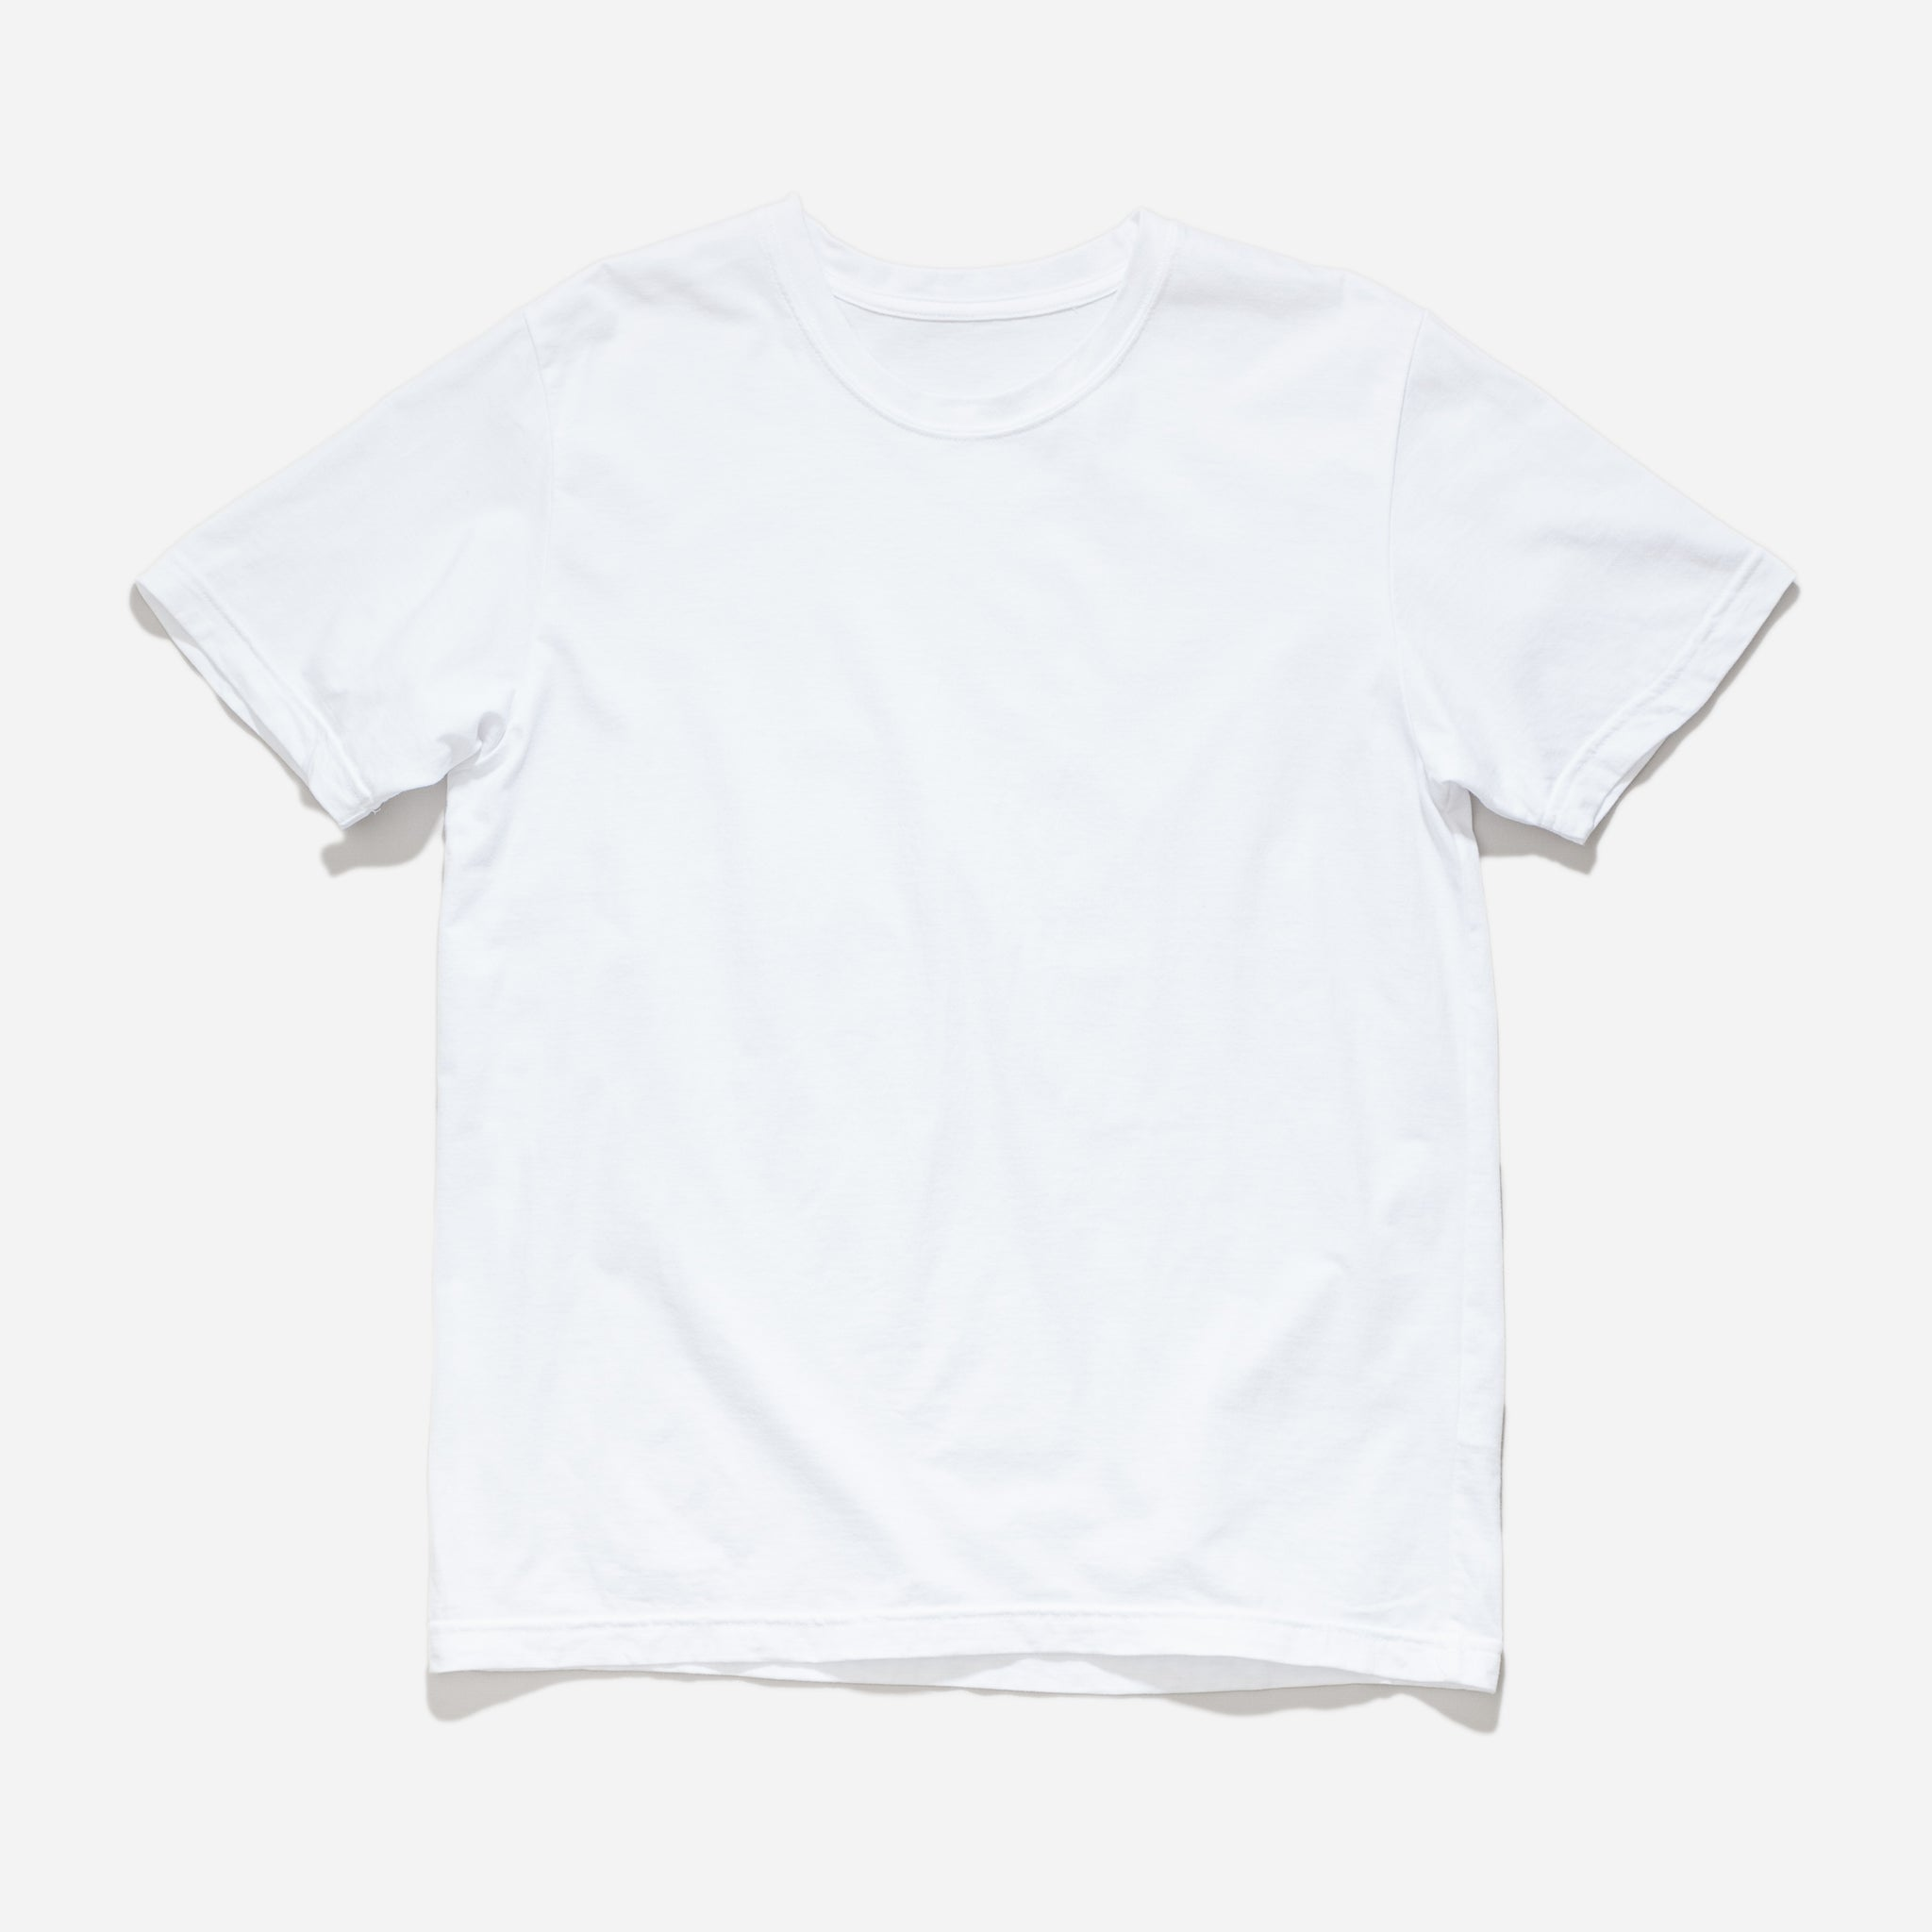 Original Tee - White (New Fit)